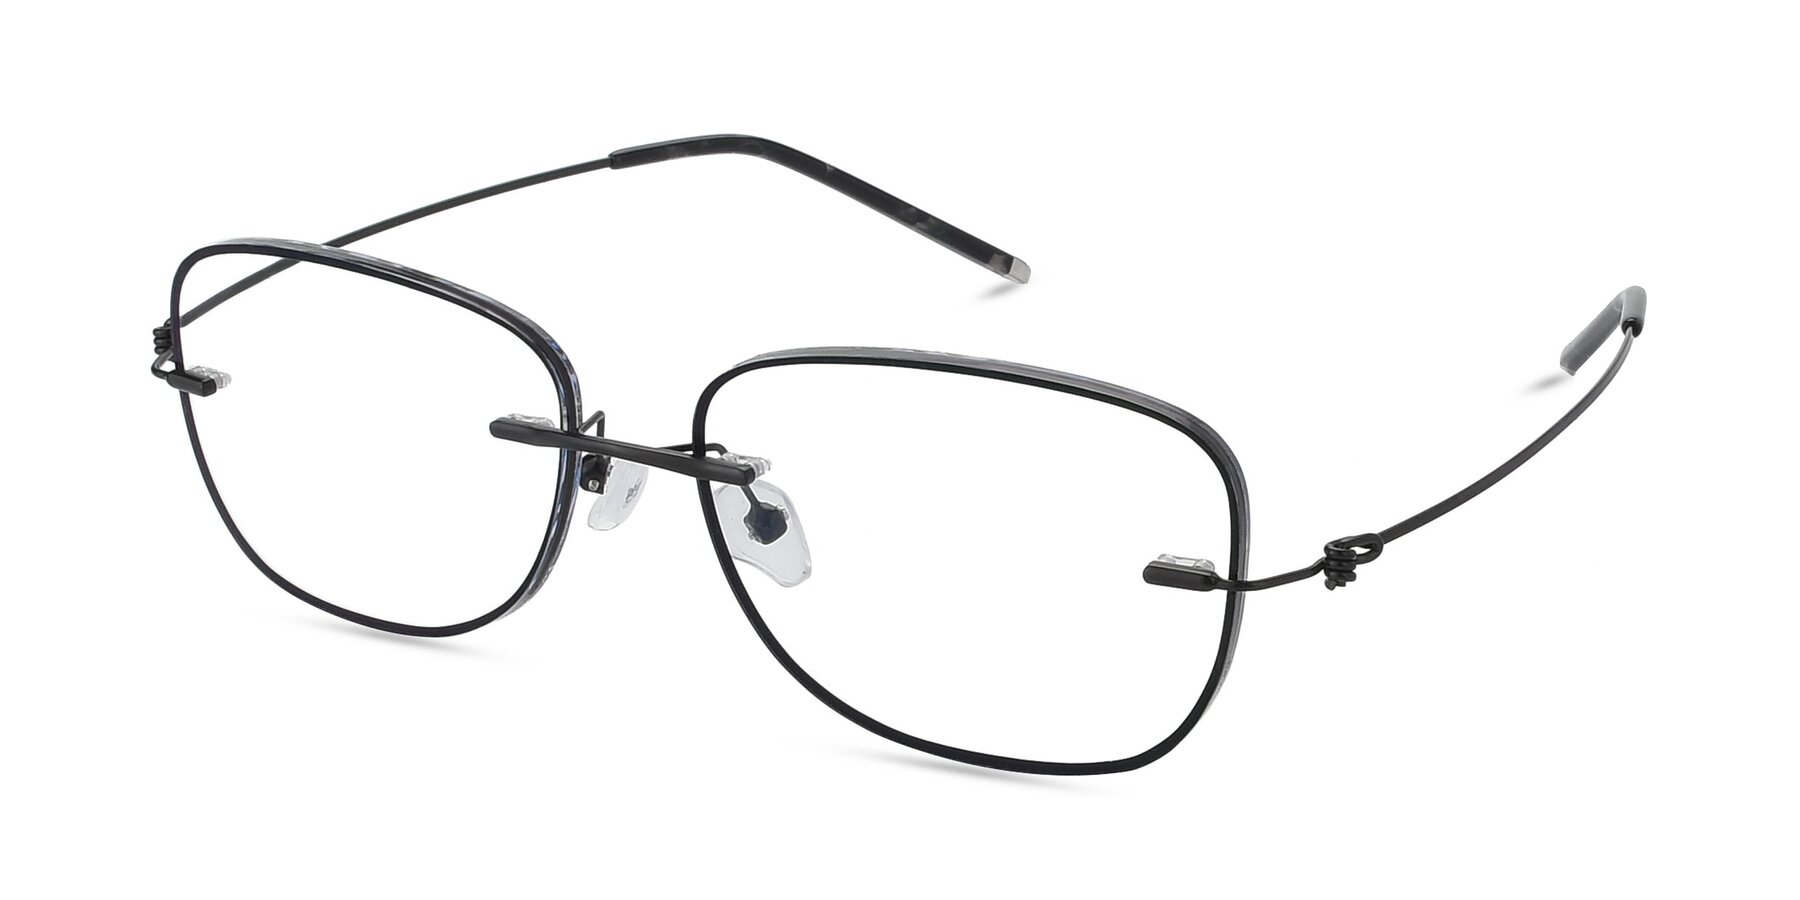 Angle of Y7002 in Black-Gun with Clear Blue Light Blocking Lenses